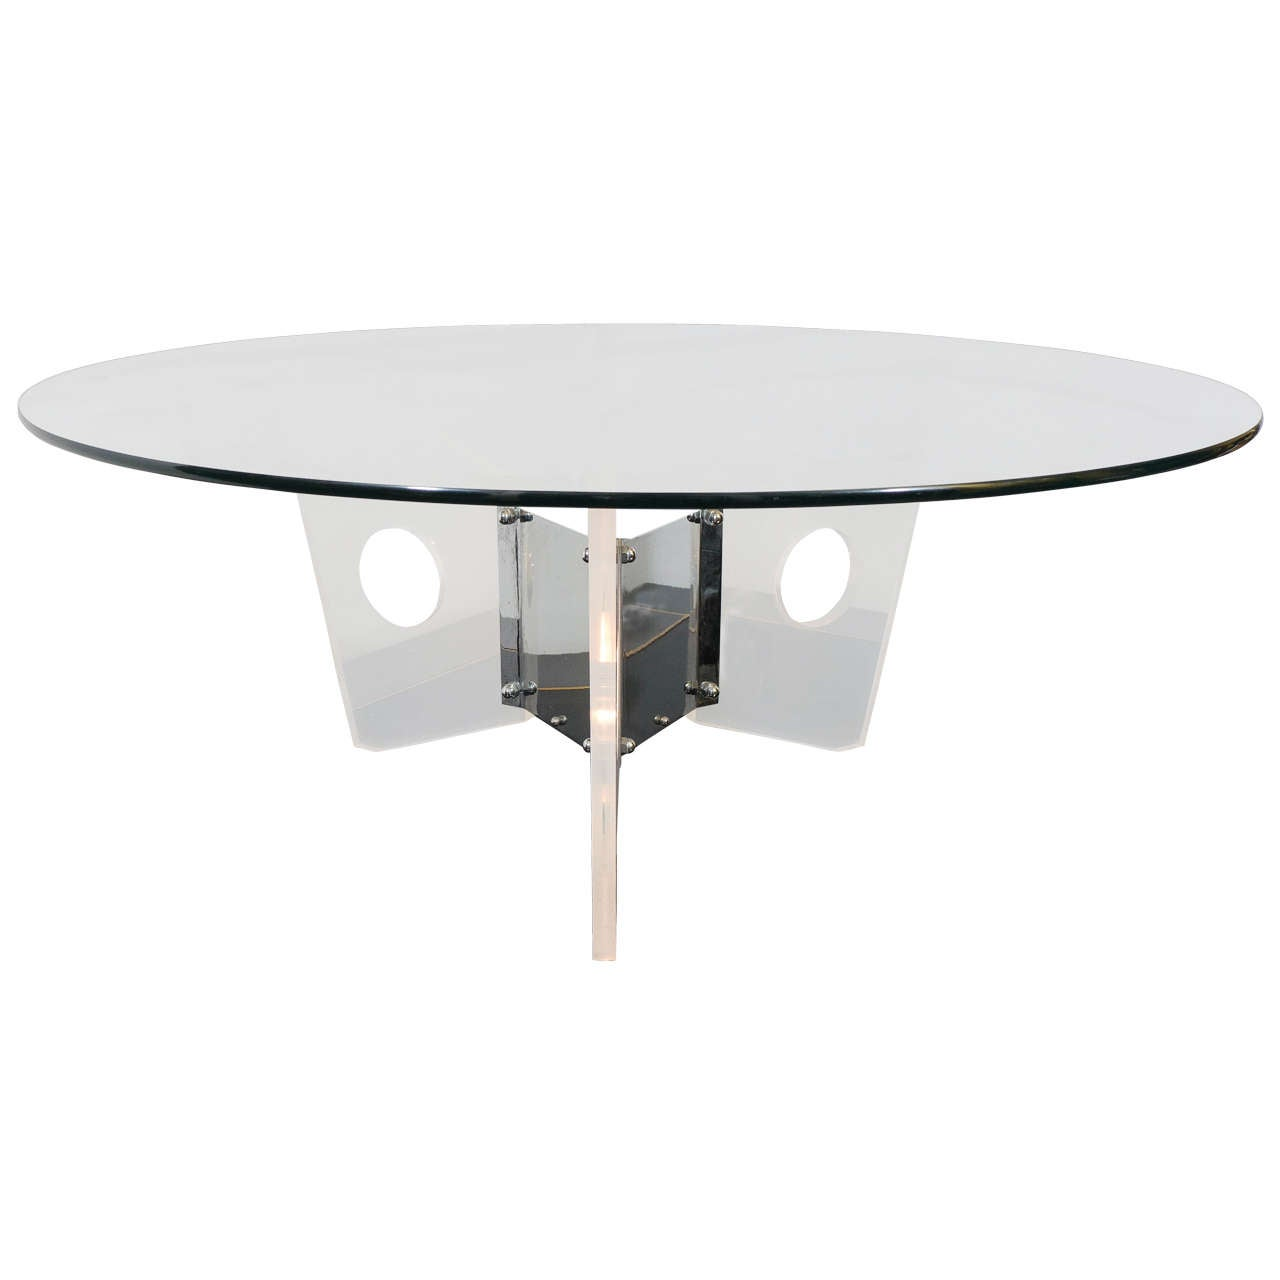 Midcentury Round Glass Coffee Table With Illuminated Lucite Base At 1stdibs